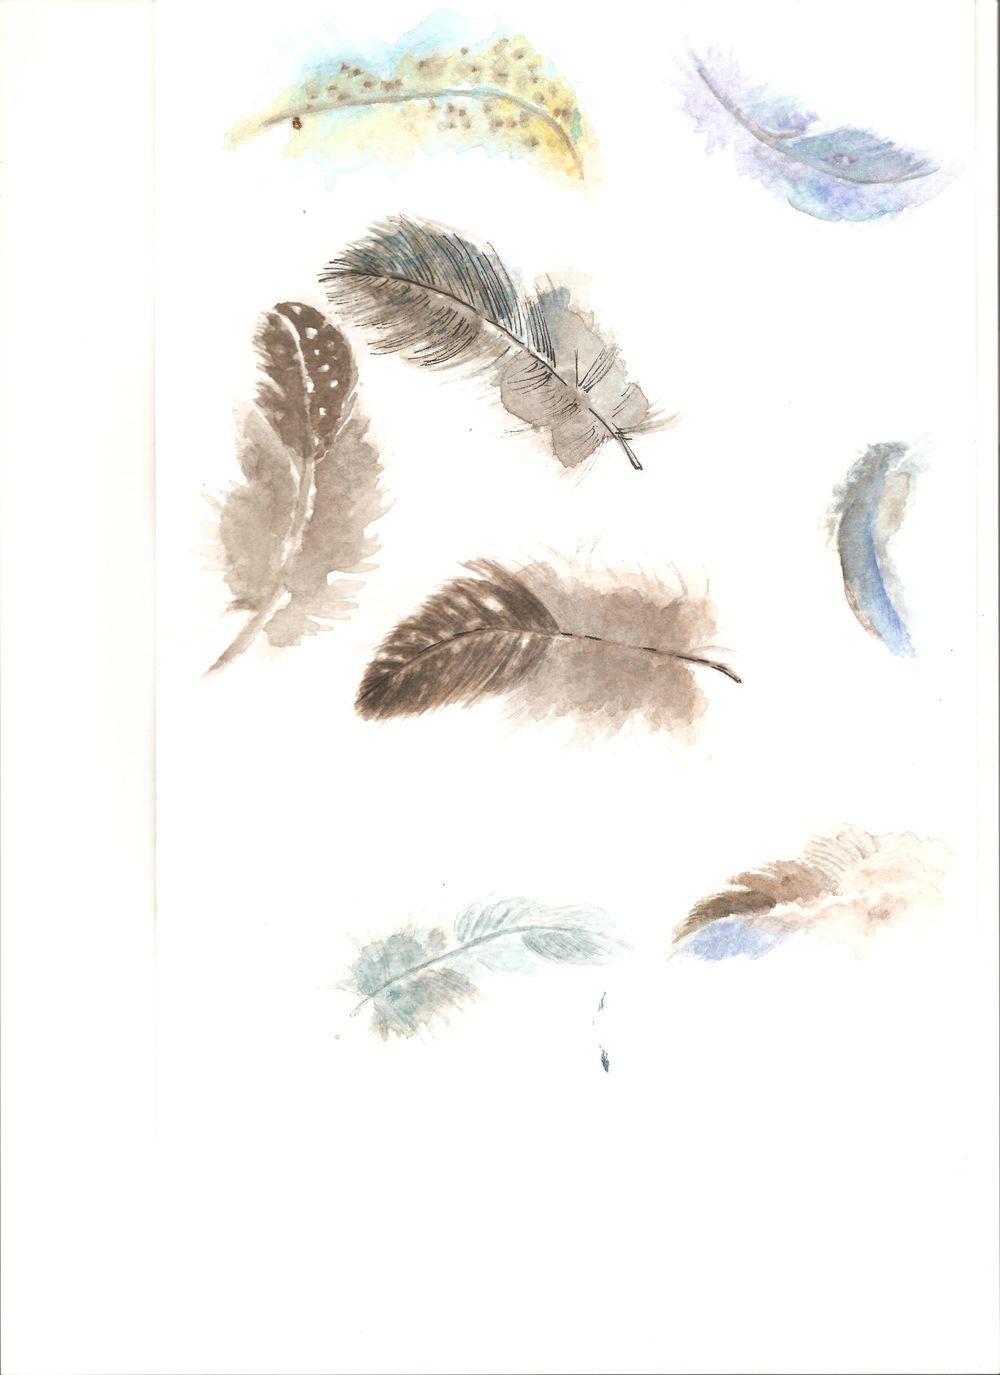 feathers everywhere - image 1 - student project